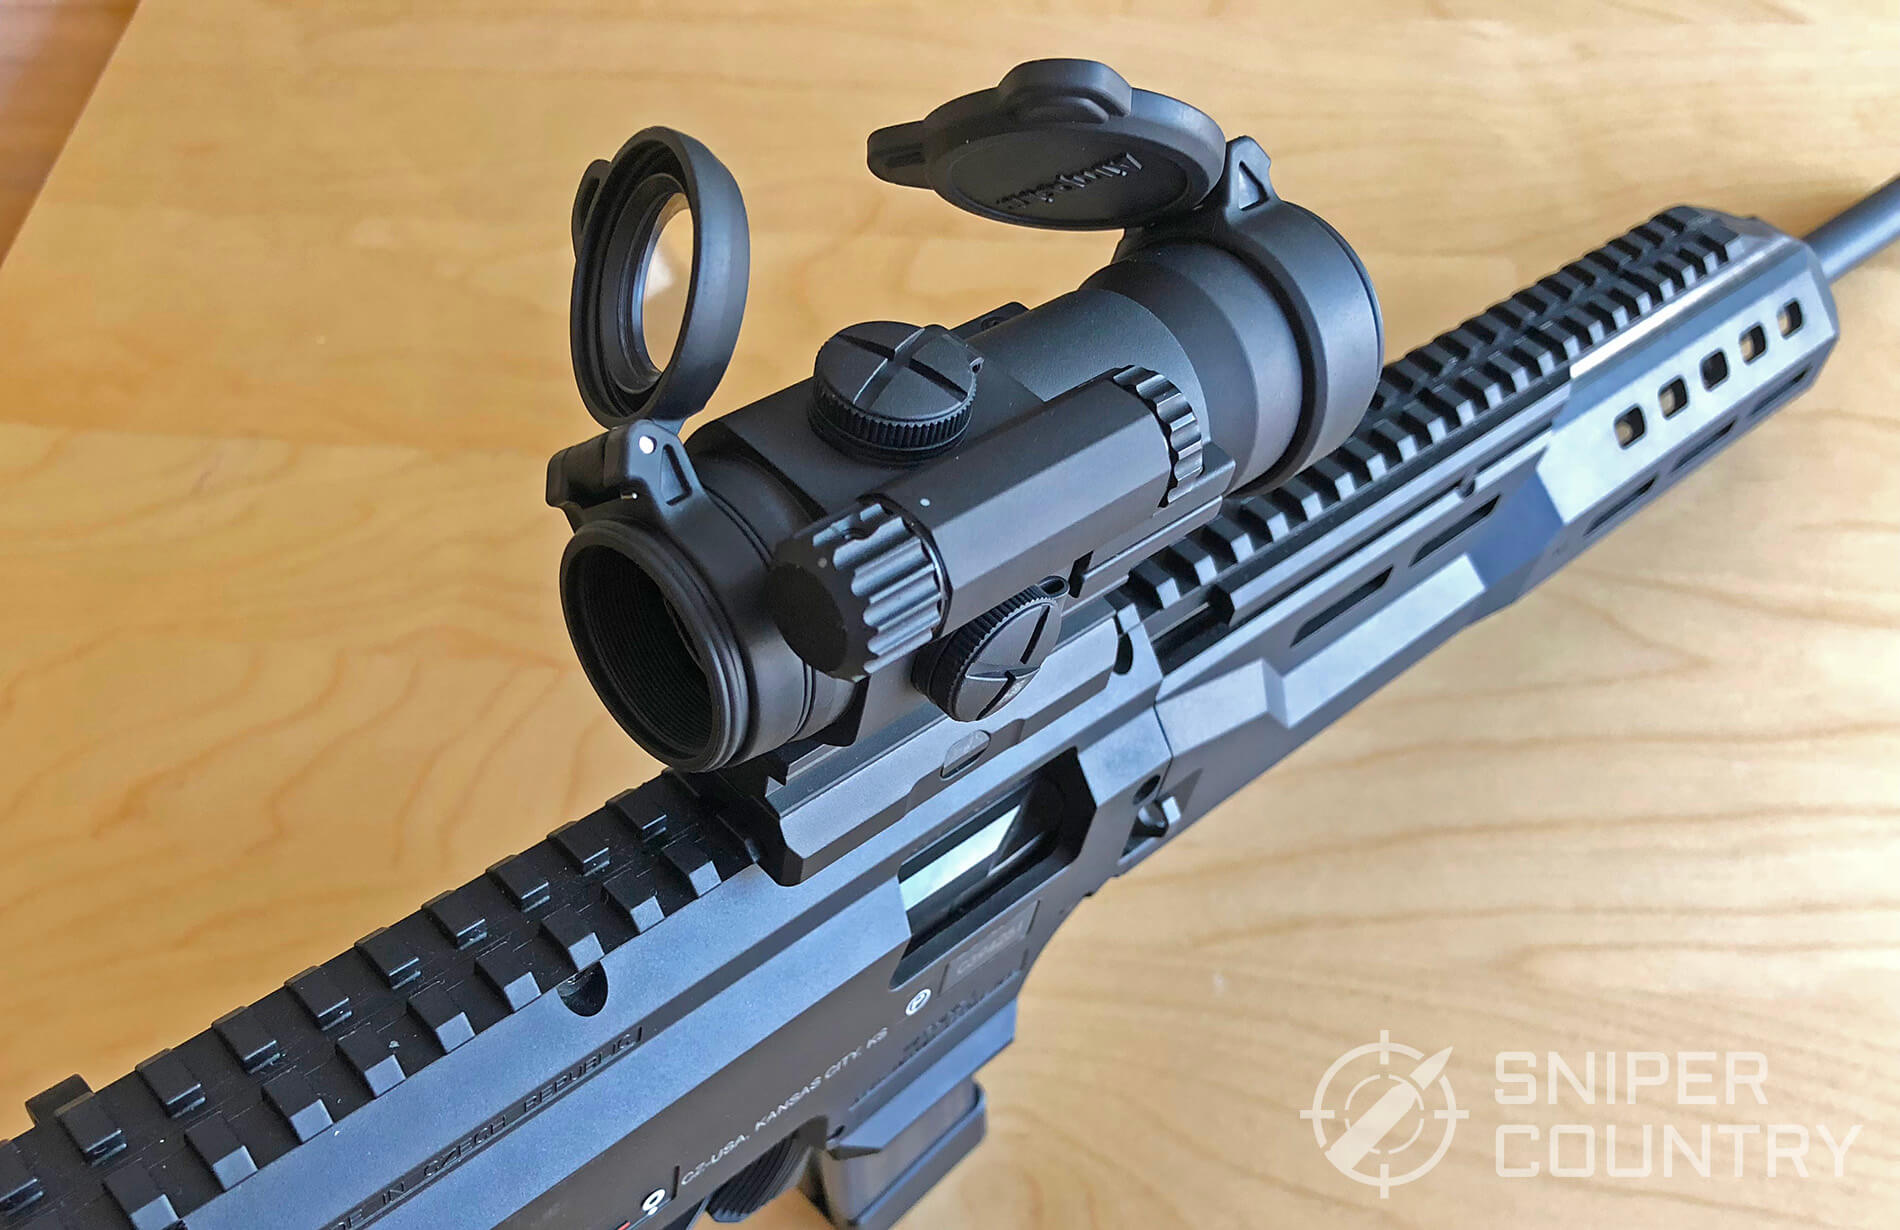 Aimpoint Pro Red Dot mounted on Scorpion EVO